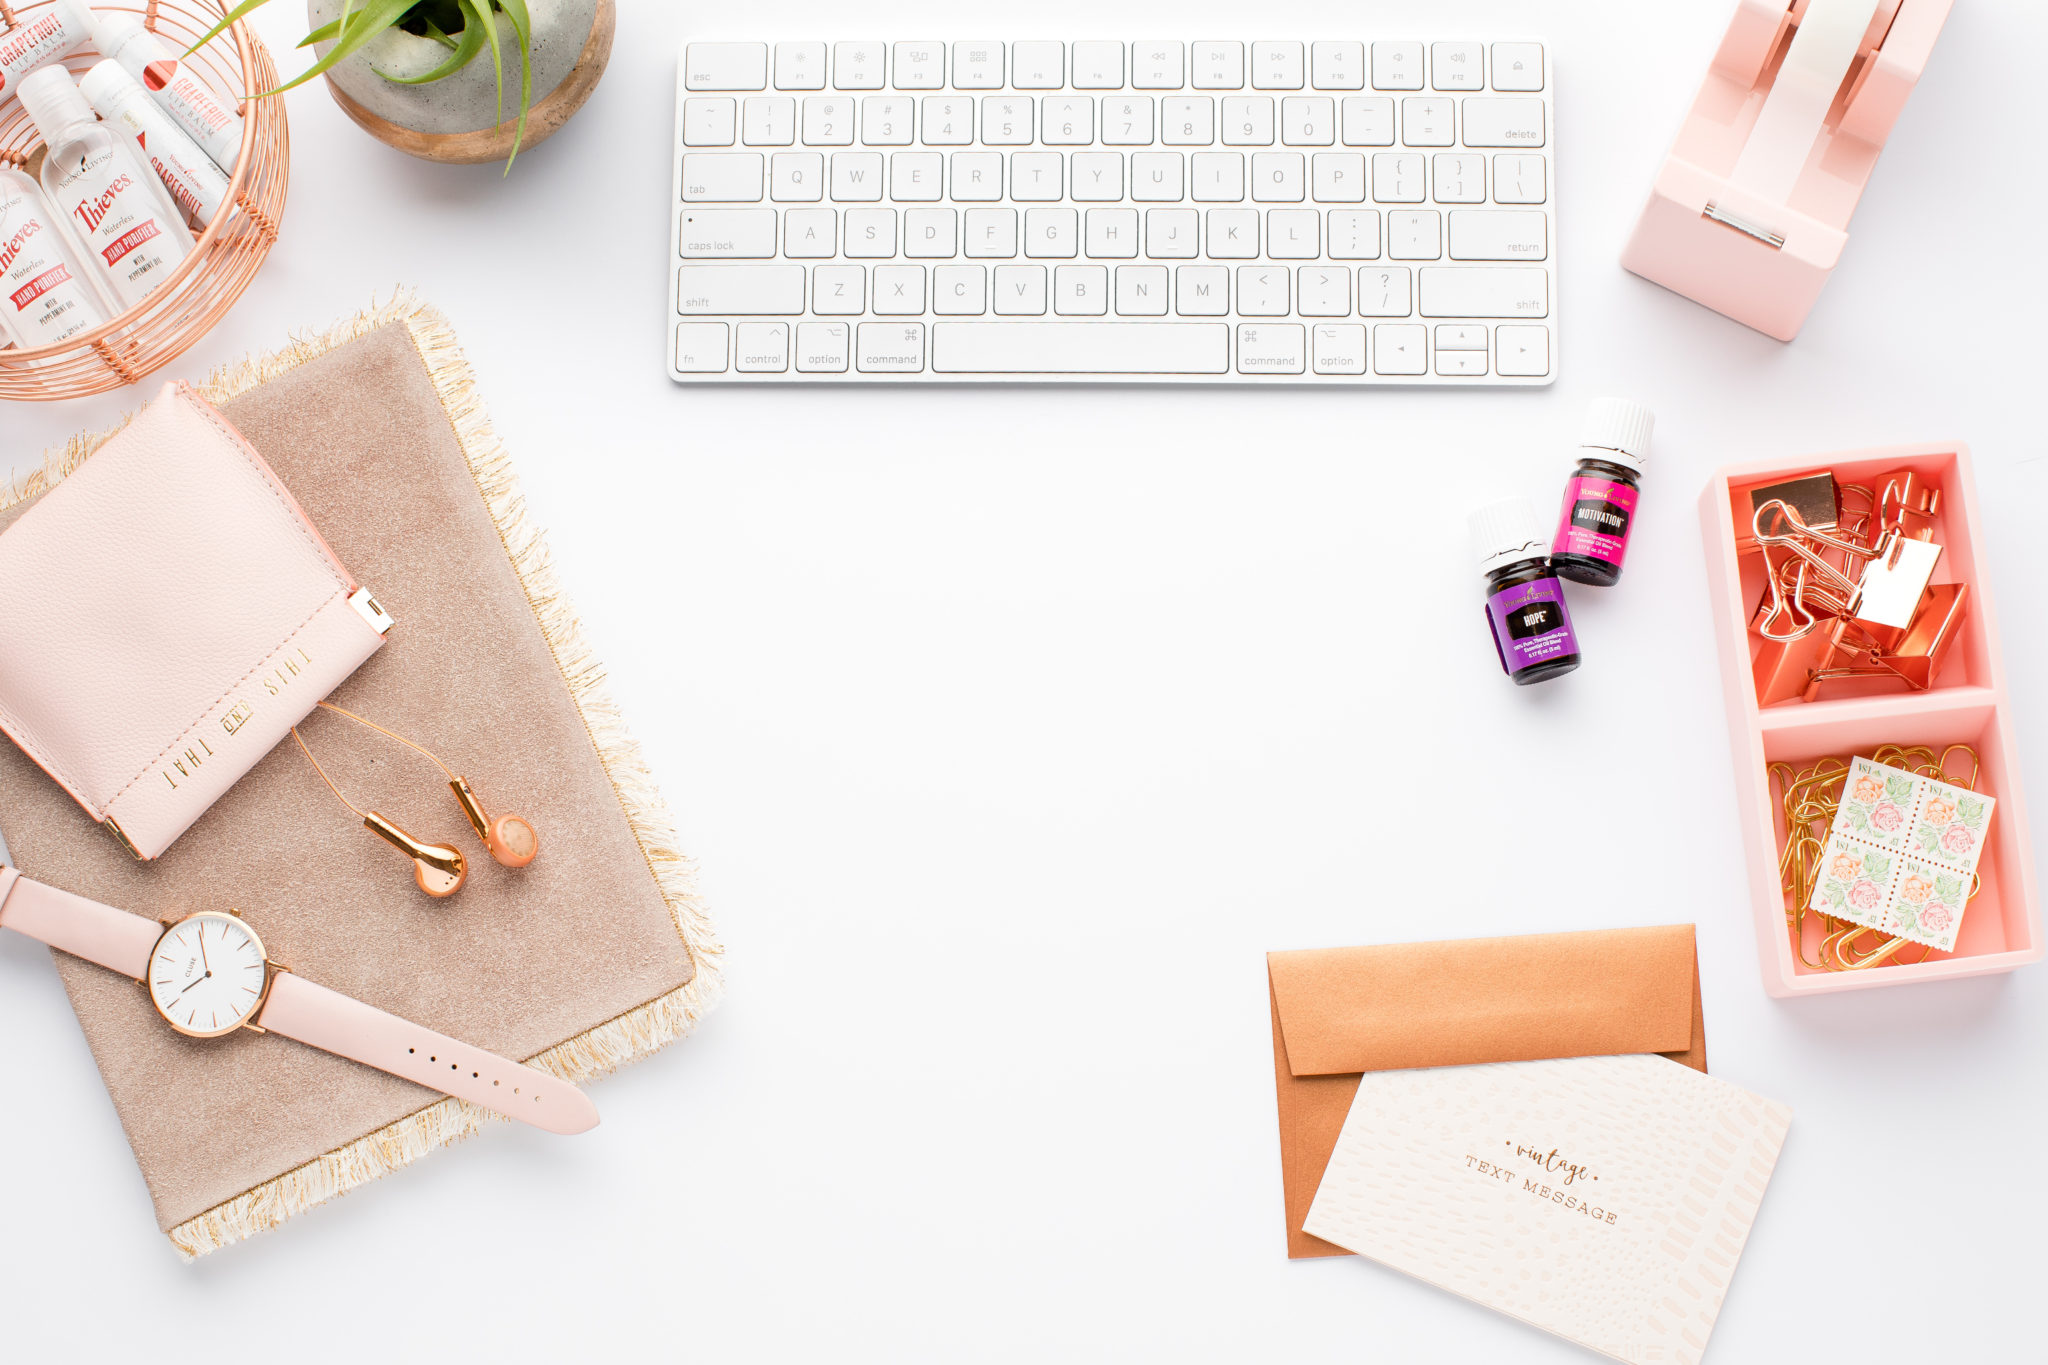 Getting Started: How to Order an Essential OIls Starter Kit